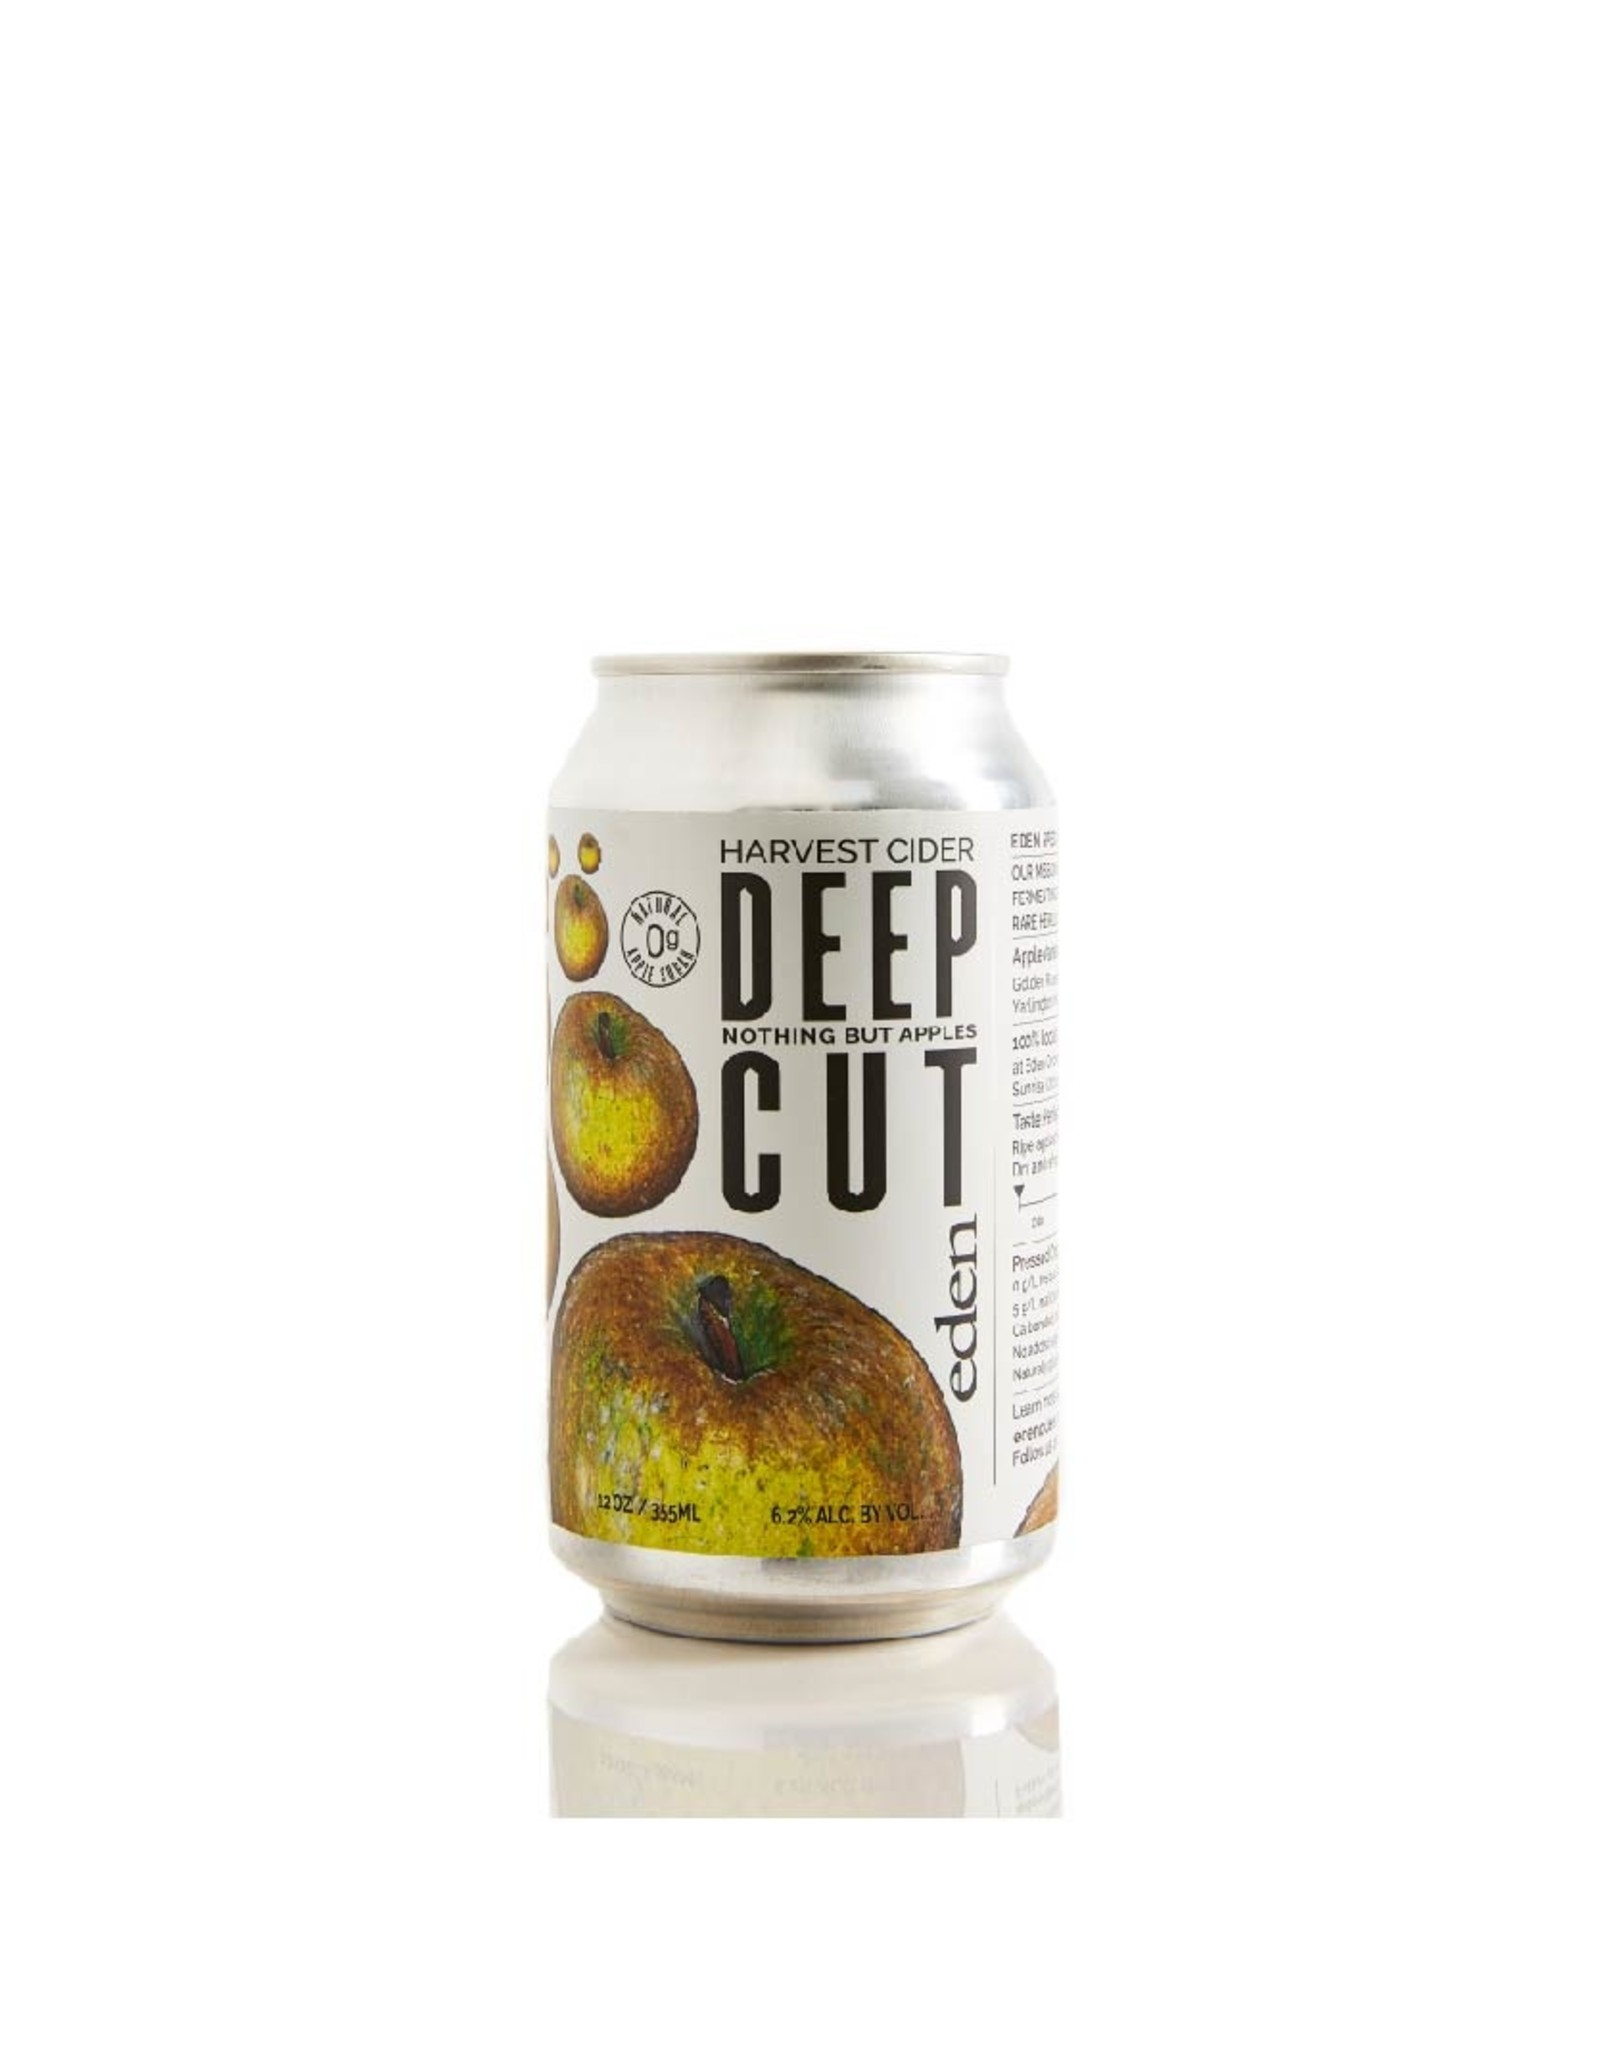 Eden Deep Cut Harvest Cider 4-Pack